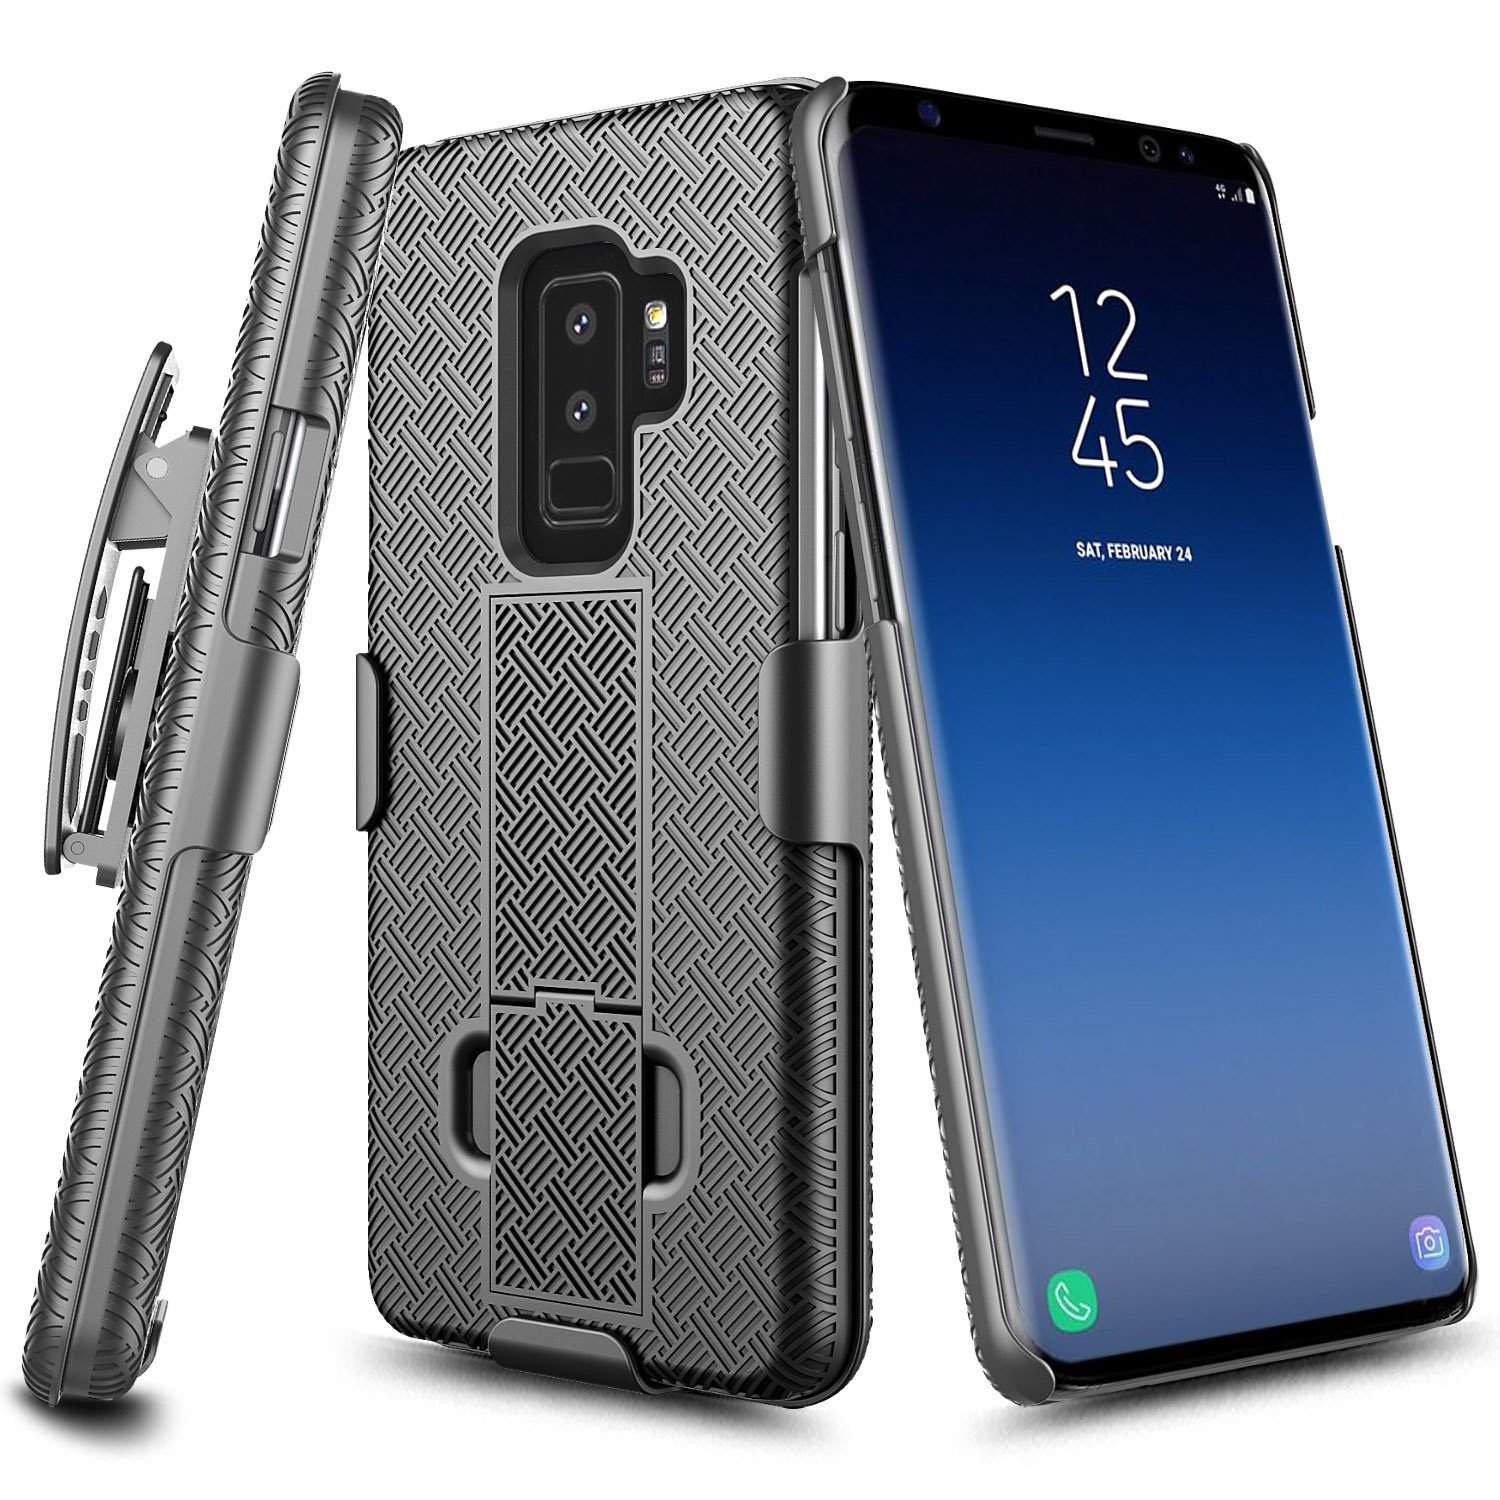 [Samsung Galaxy S9], [Black] Supreme Protection Slim Matte Rubberized Hard Plastic Case Cover with Kickstand and Swivel Belt Clip